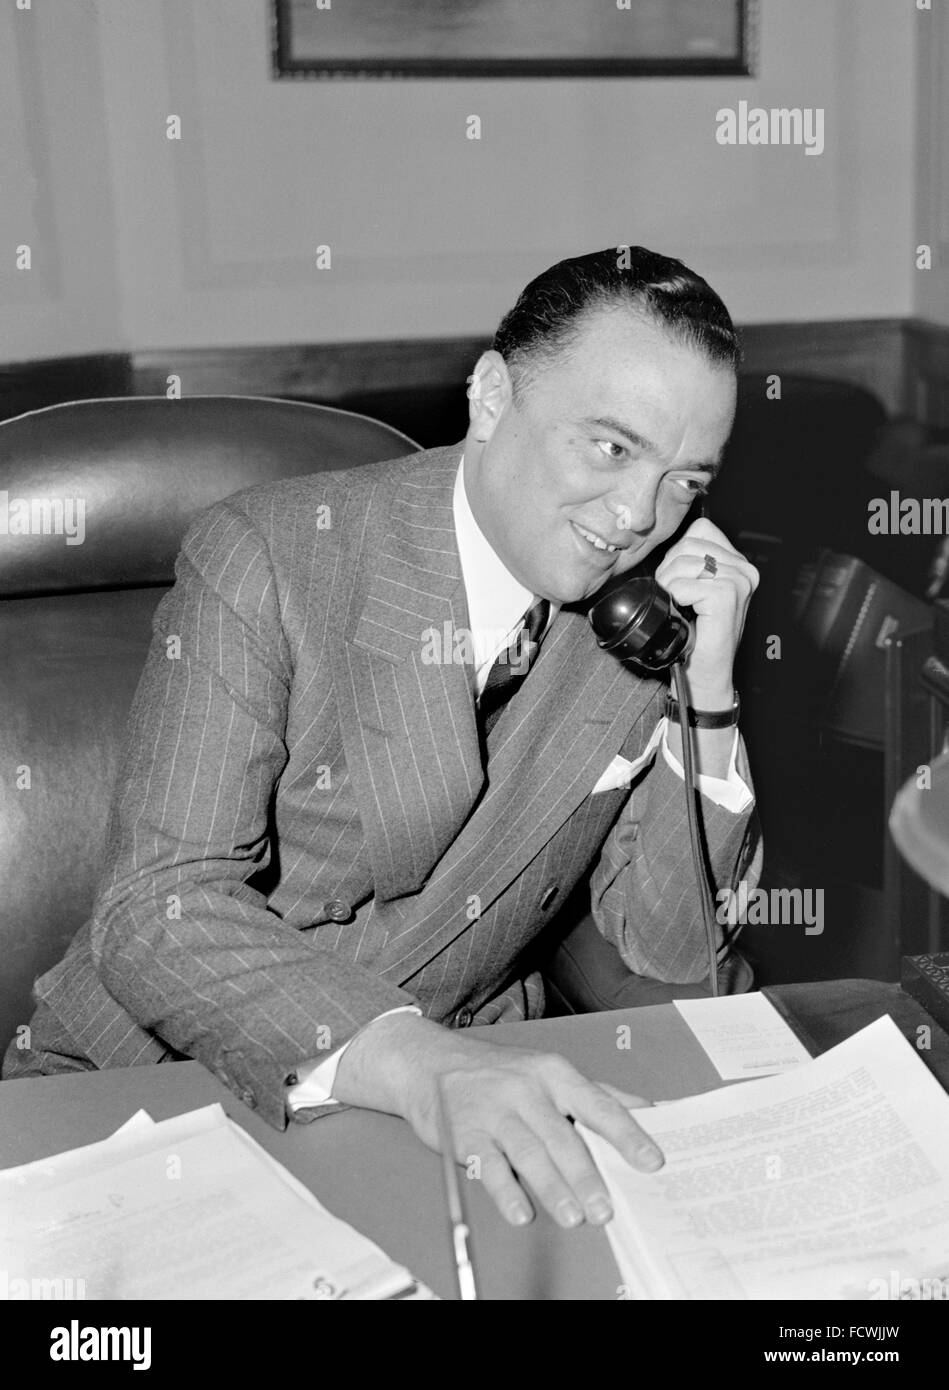 J Edgar Hoover. Portrait of  the first Director of the Federal Bureau of Investigation (FBI) in the USA, April 1940 - Stock Image